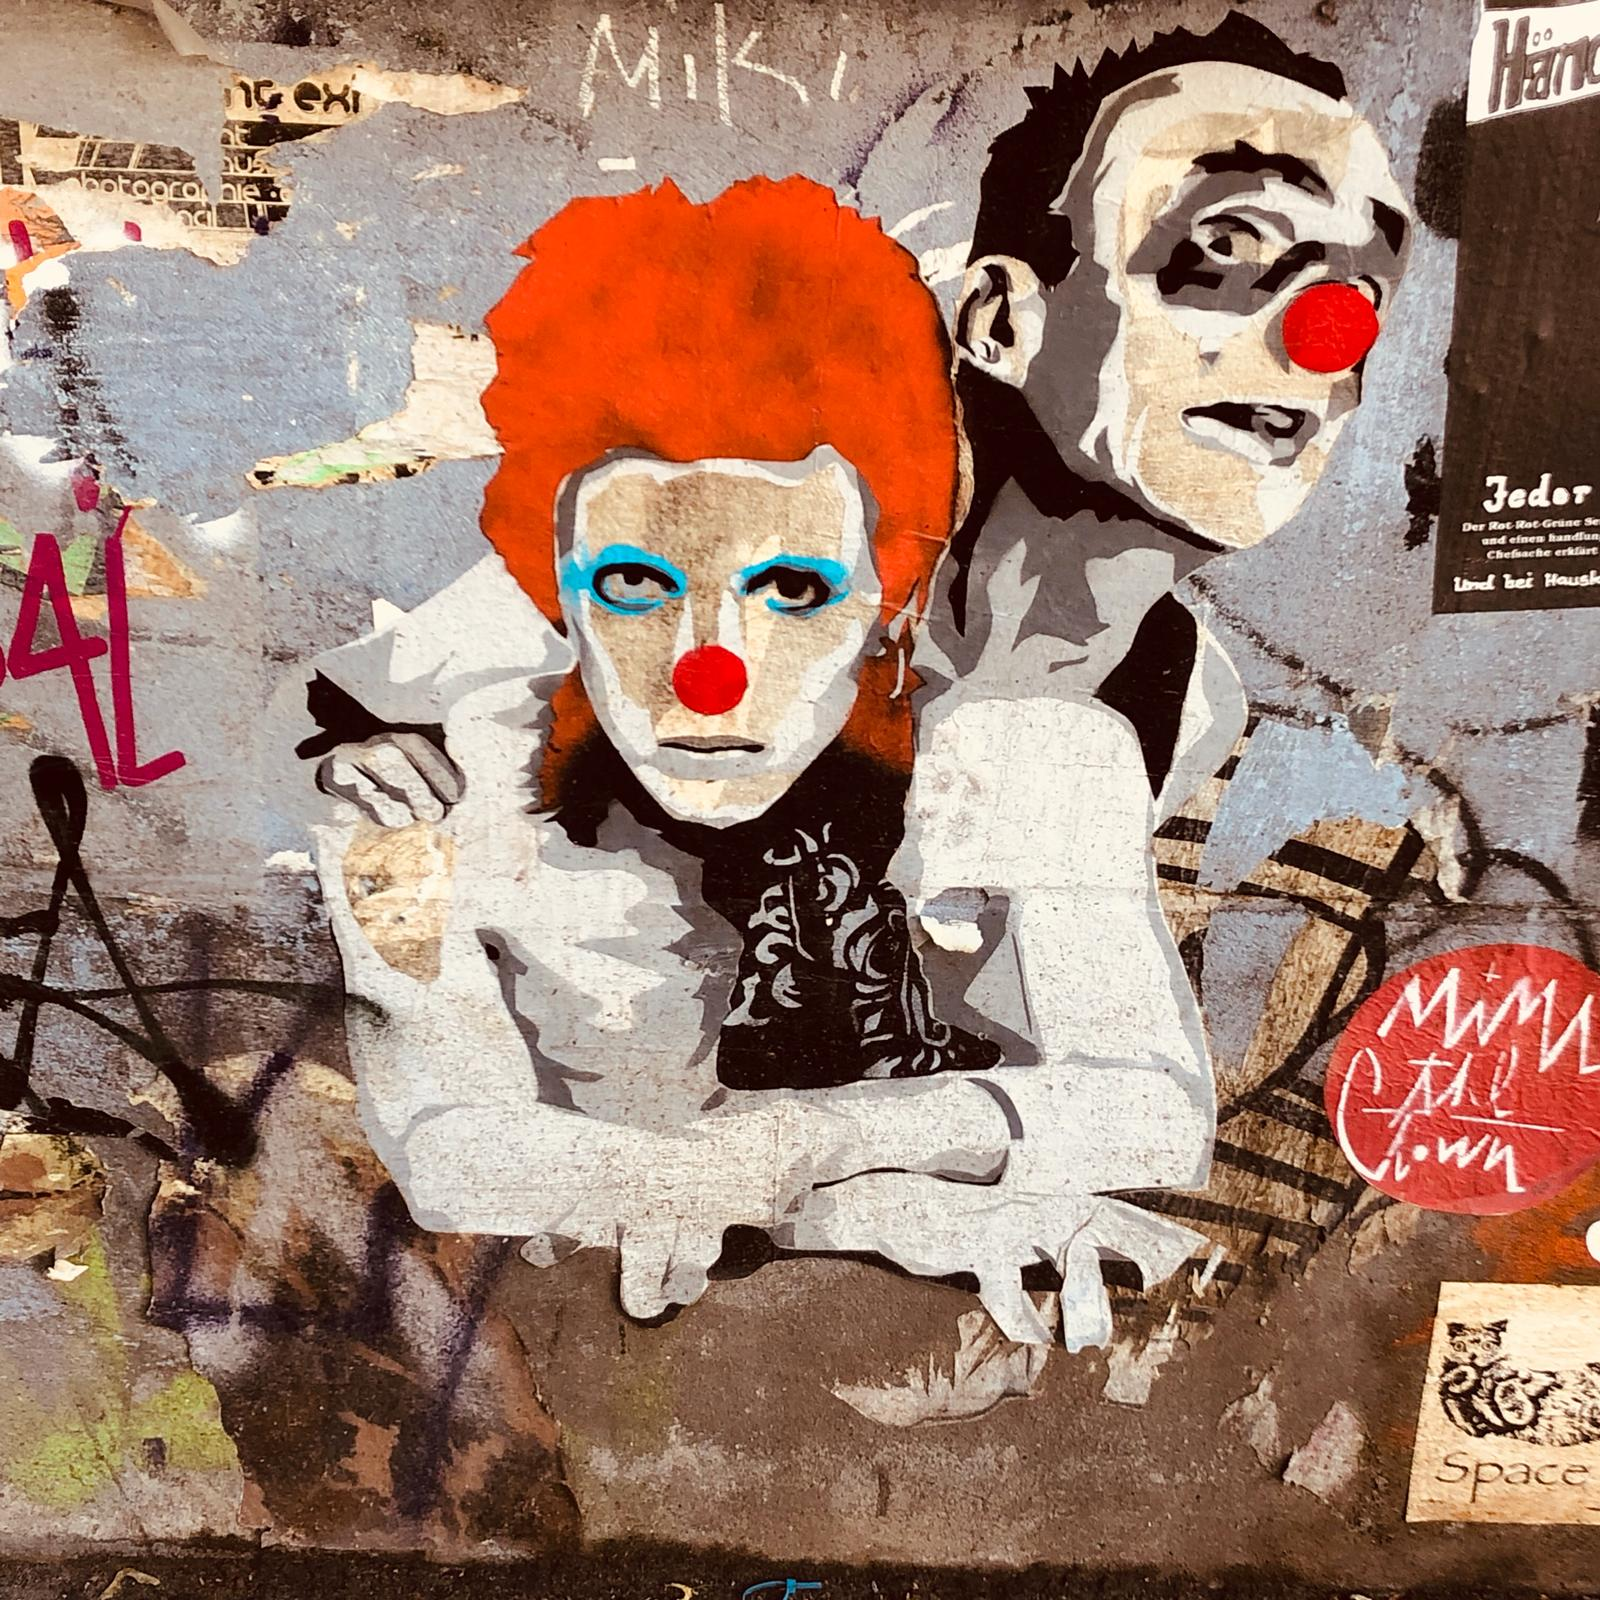 Mimi the clown and Ziggy Stardust – in Friedrichshain at the Kino Intimes. Unfortunately the 90 year old cinema just closed recently, with some hope left as members and owners try to find ways for a reopening of this great traditional place - art by #mimitheclown captured by @simoberlin